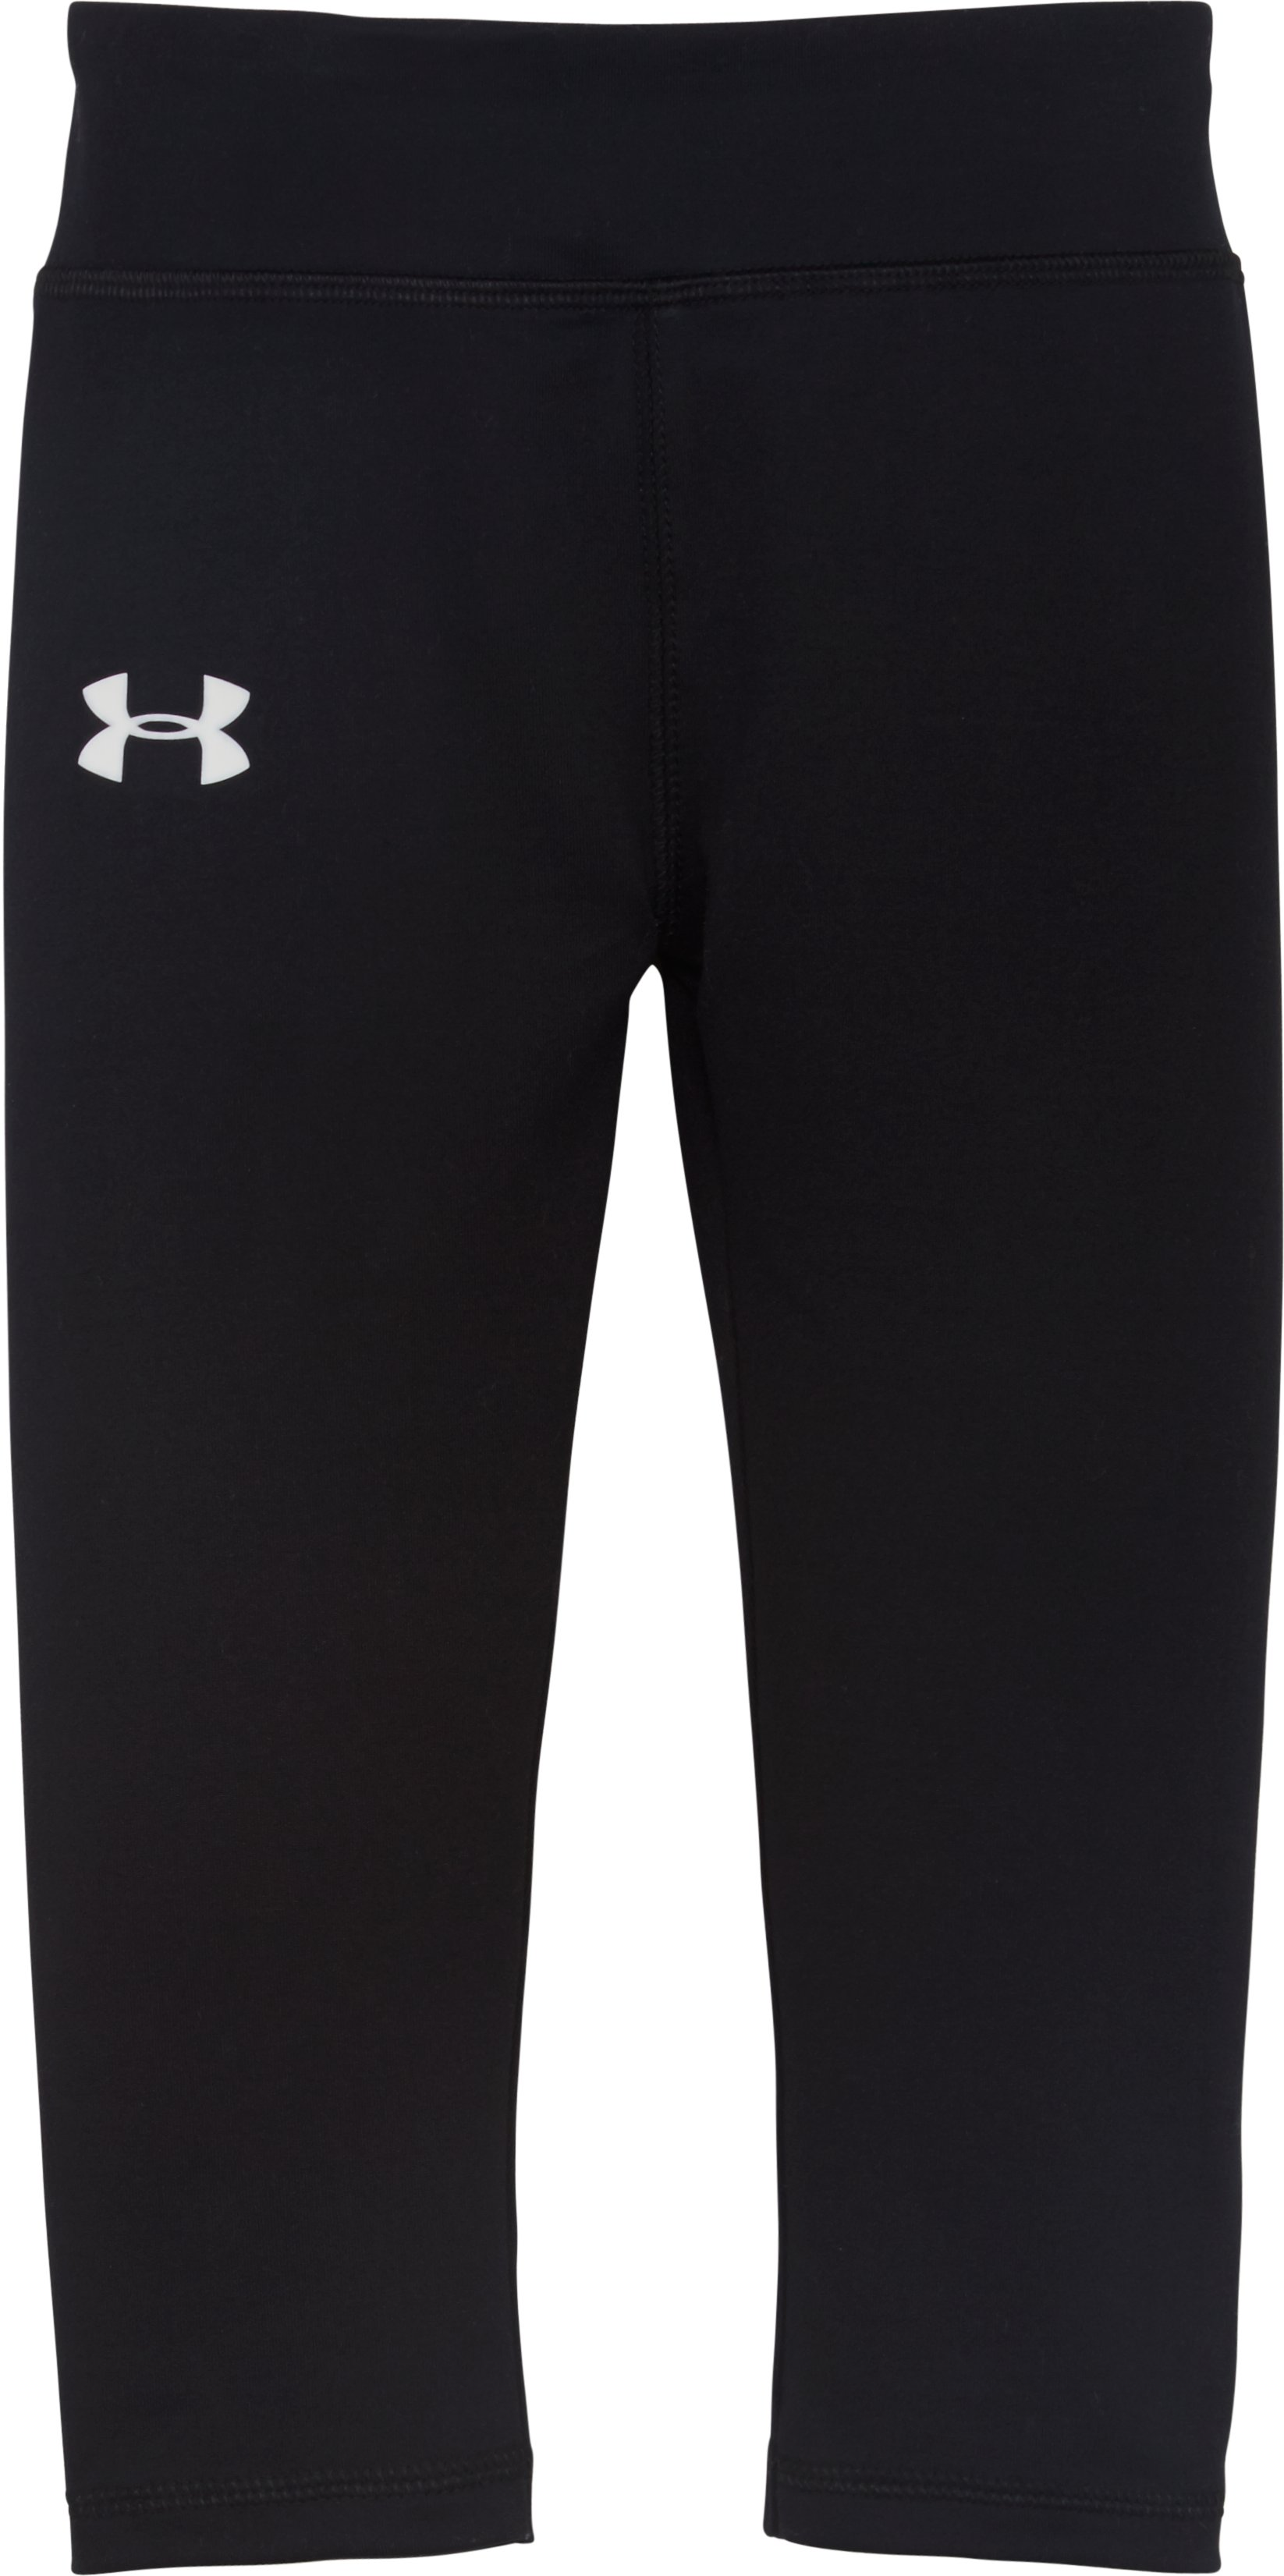 Girls' Pre-School UA Every Day Capris, Black , Laydown